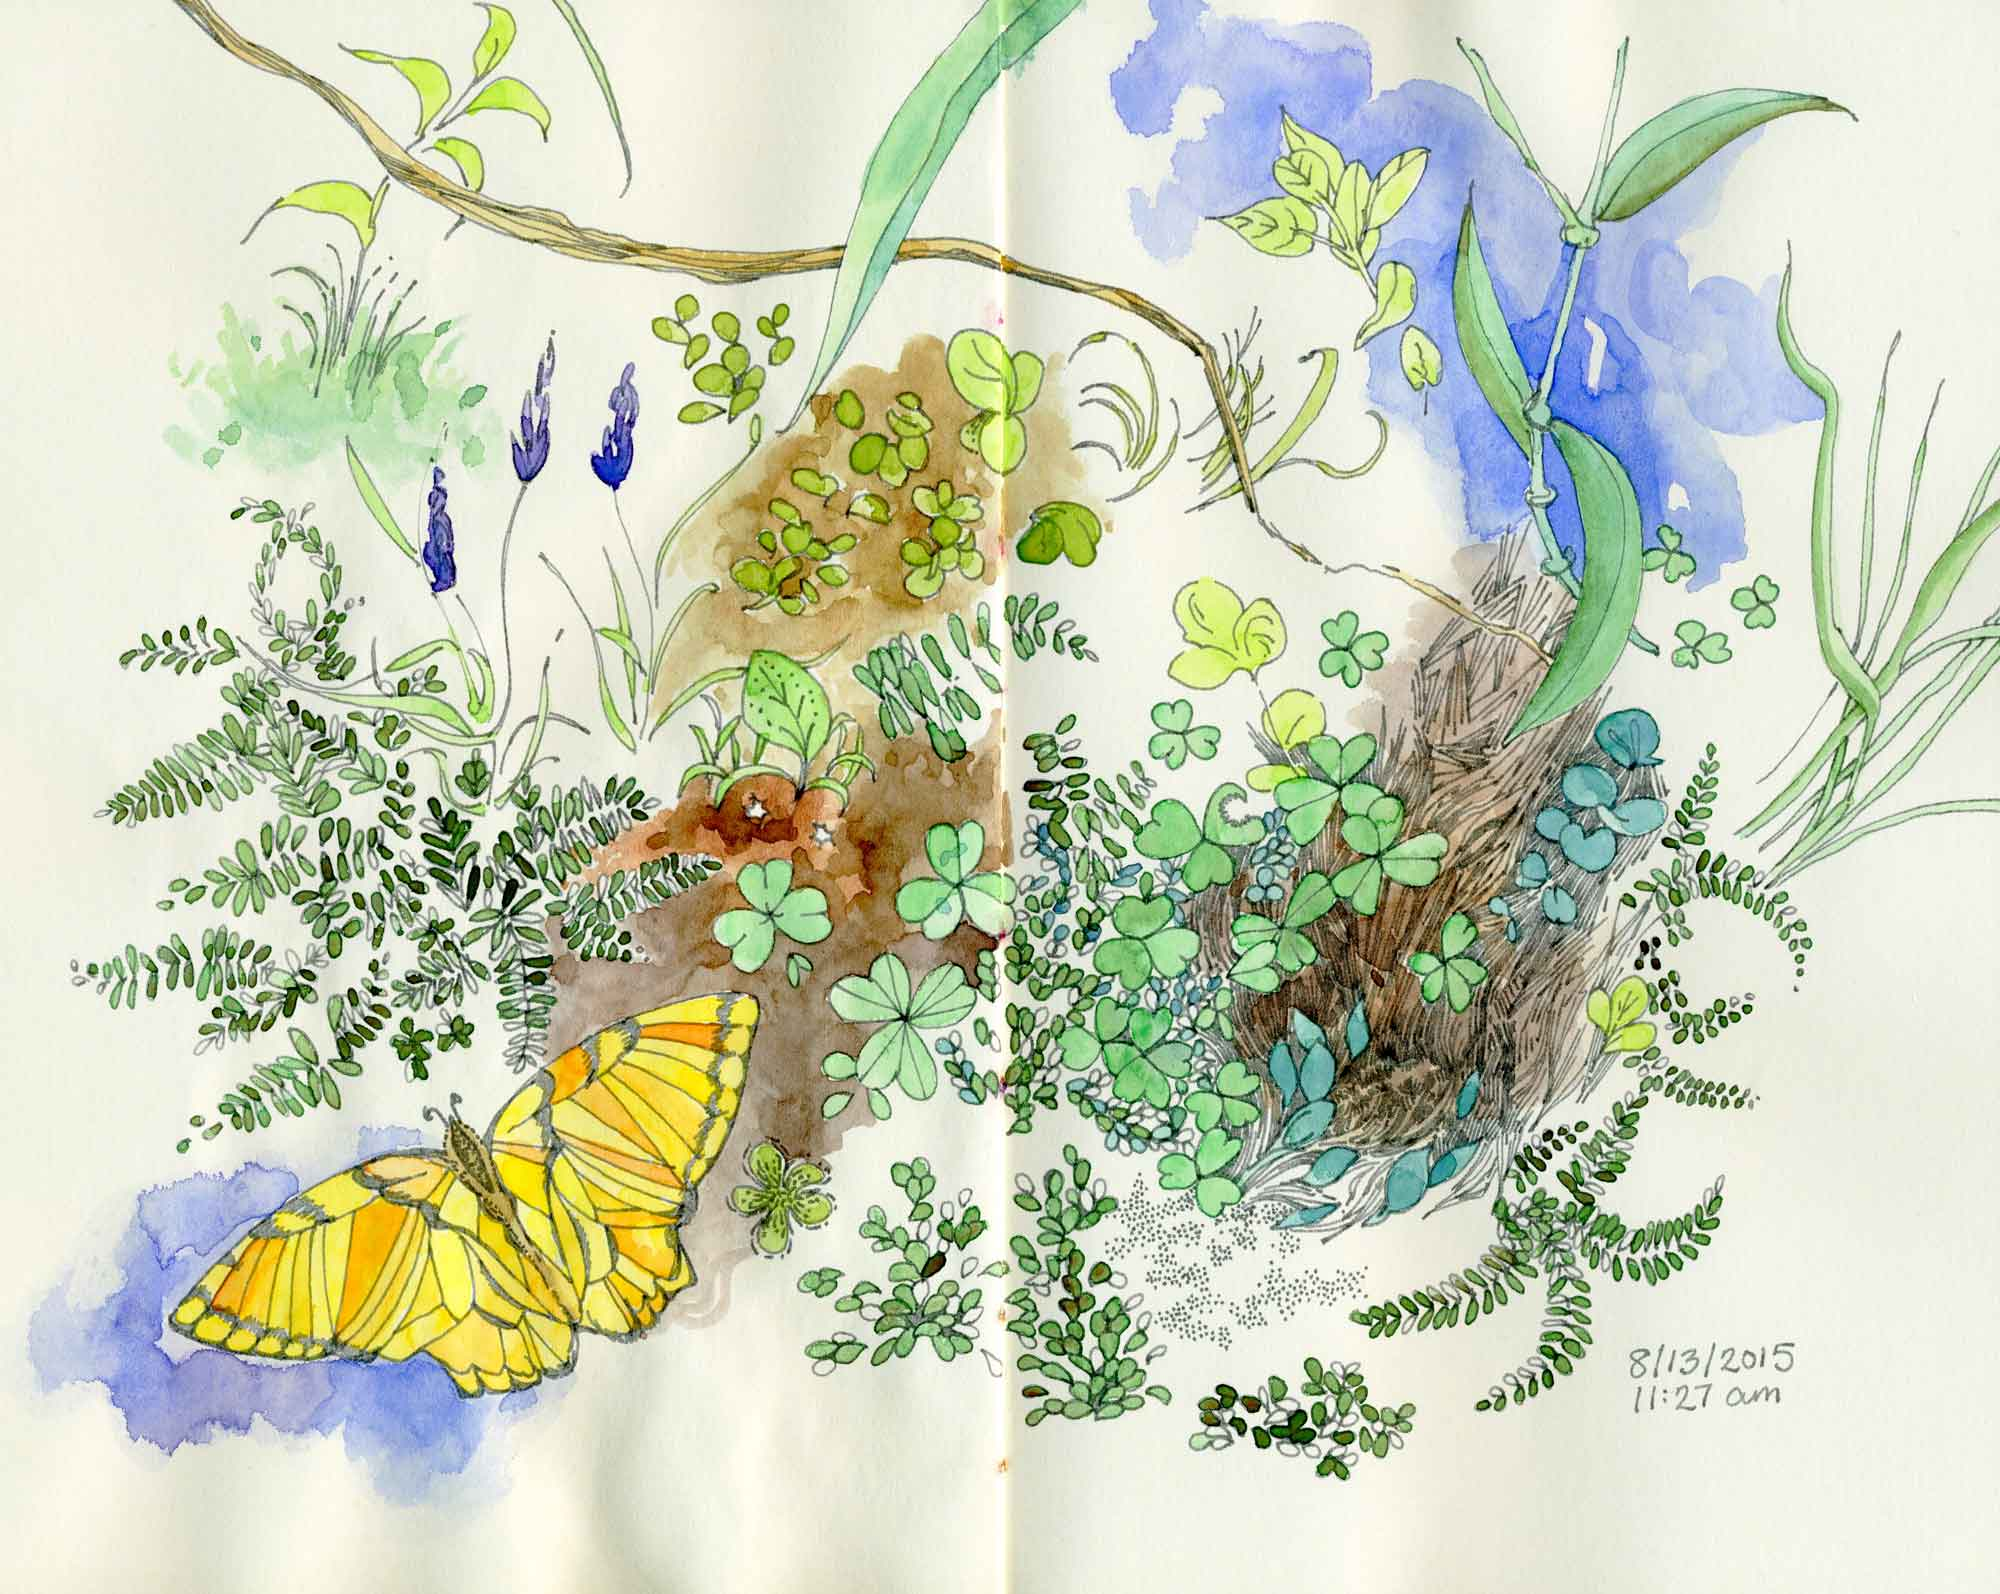 Imaginative garden drawing by Carolyn A Pappas